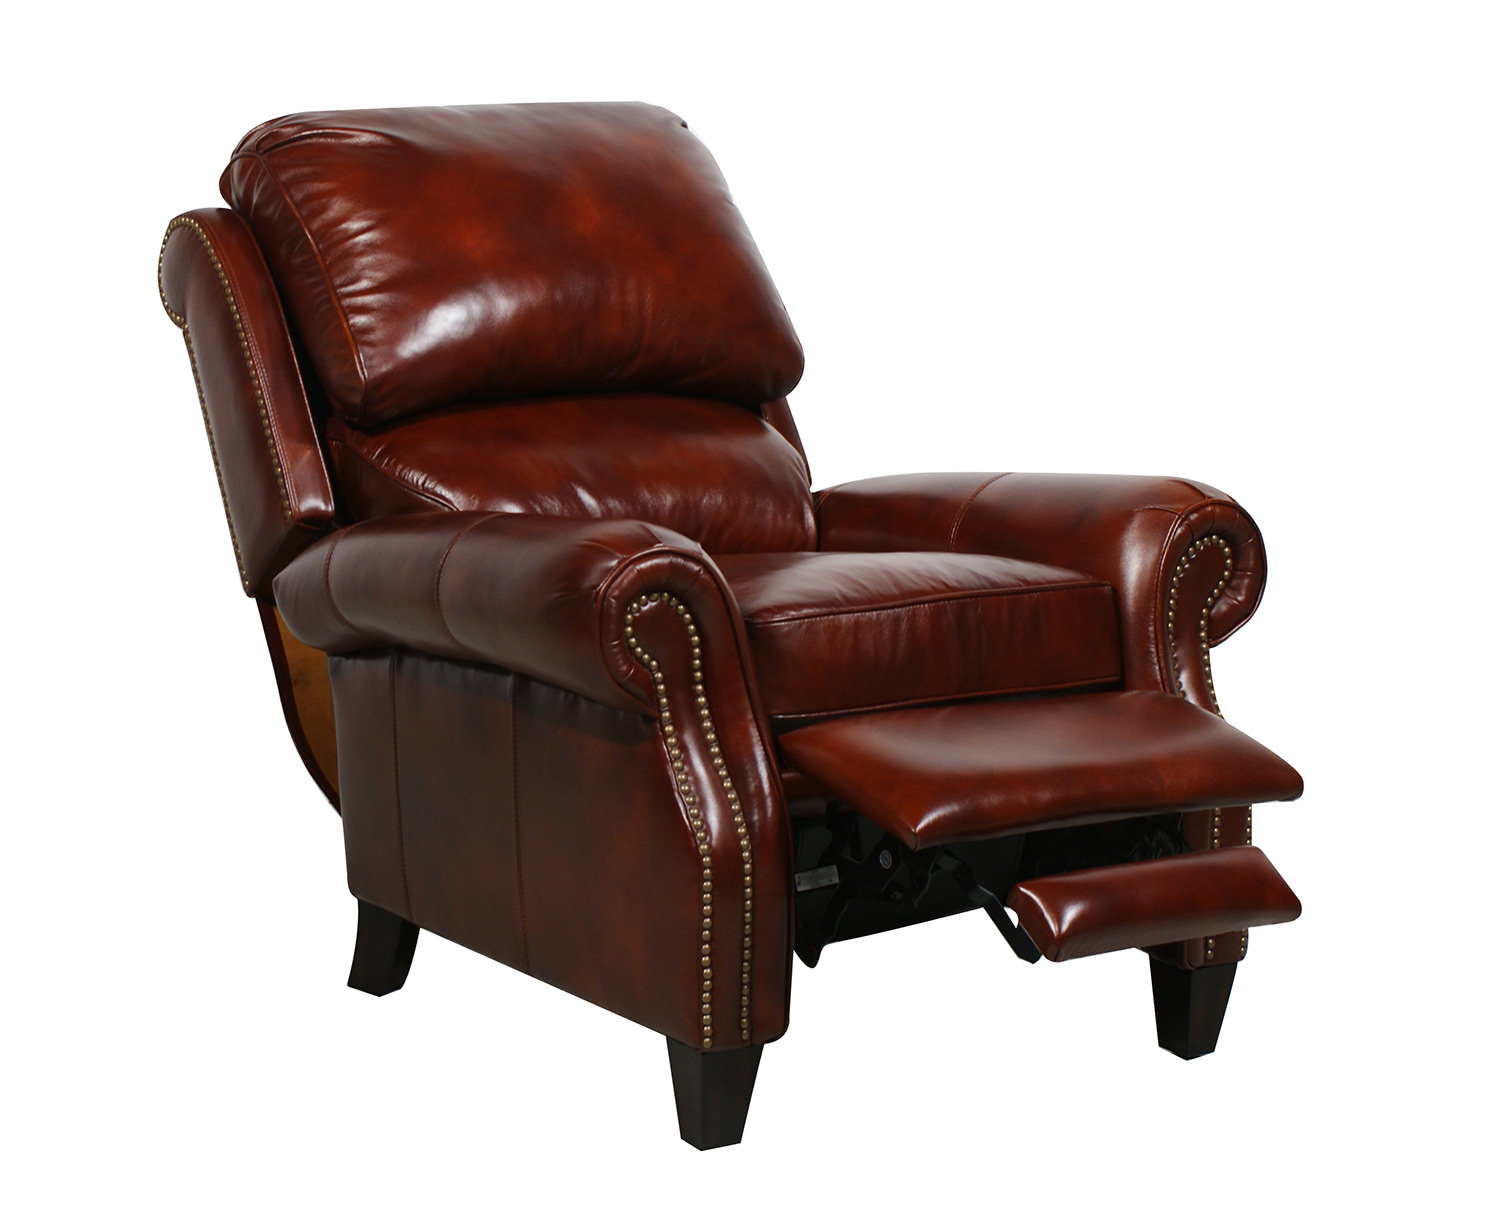 Barcalounger Churchill Ll Vintage Reserve Leather Recliner